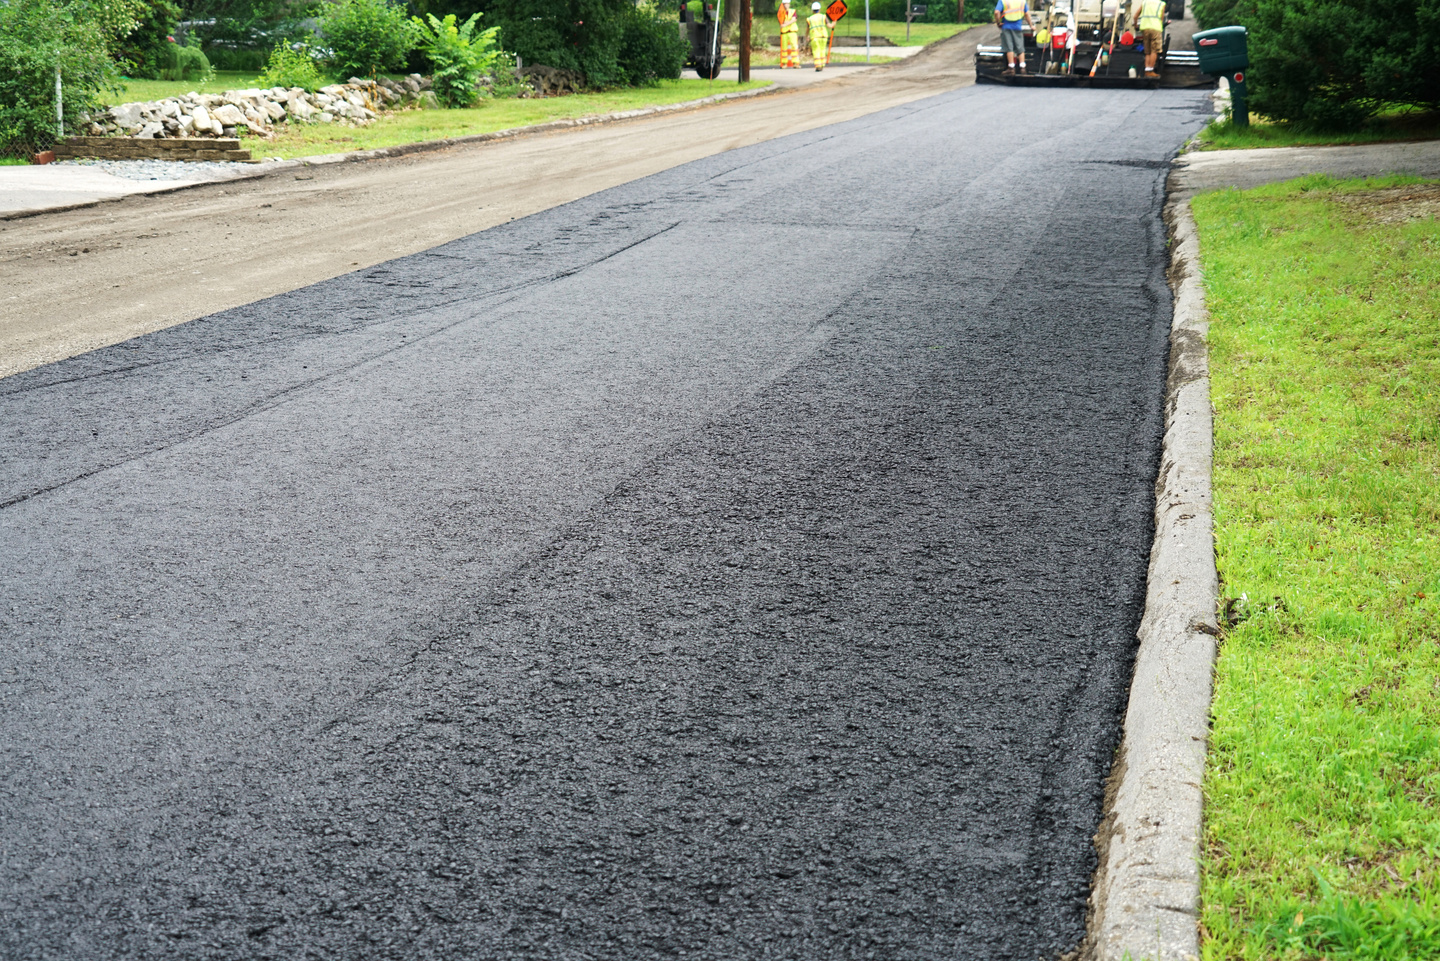 pavement in residential area